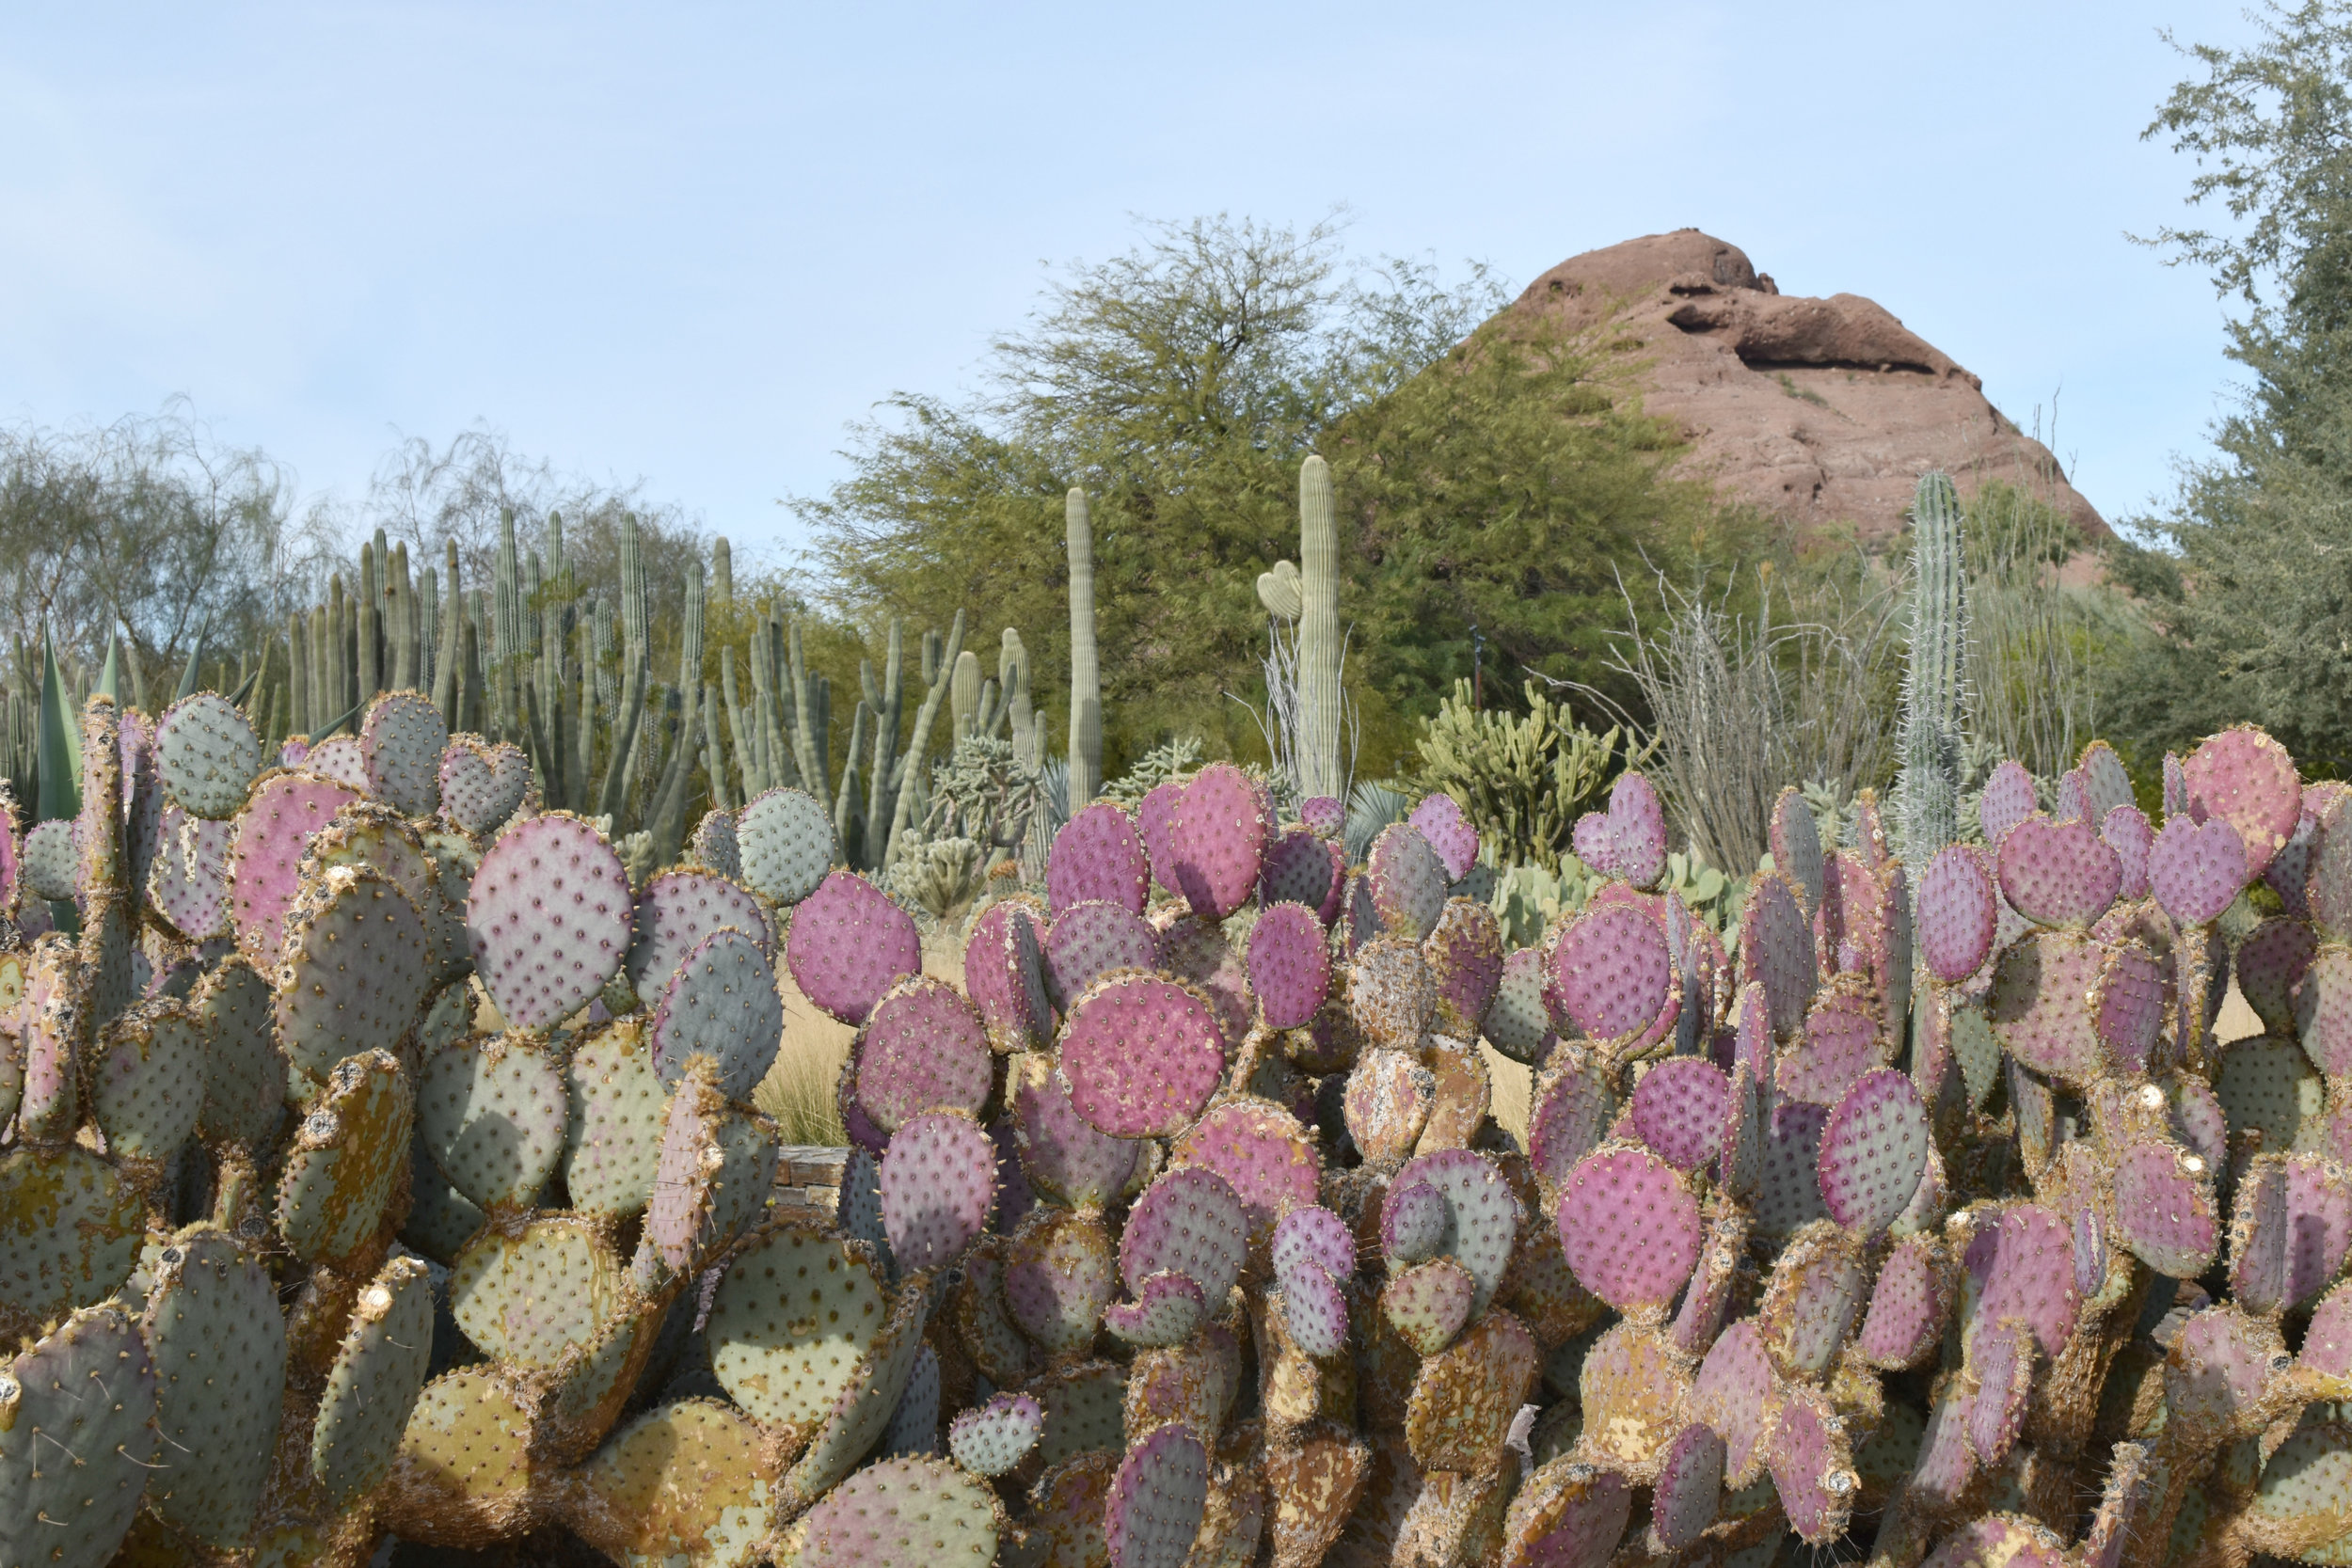 We left with some candy made from cacti like these!